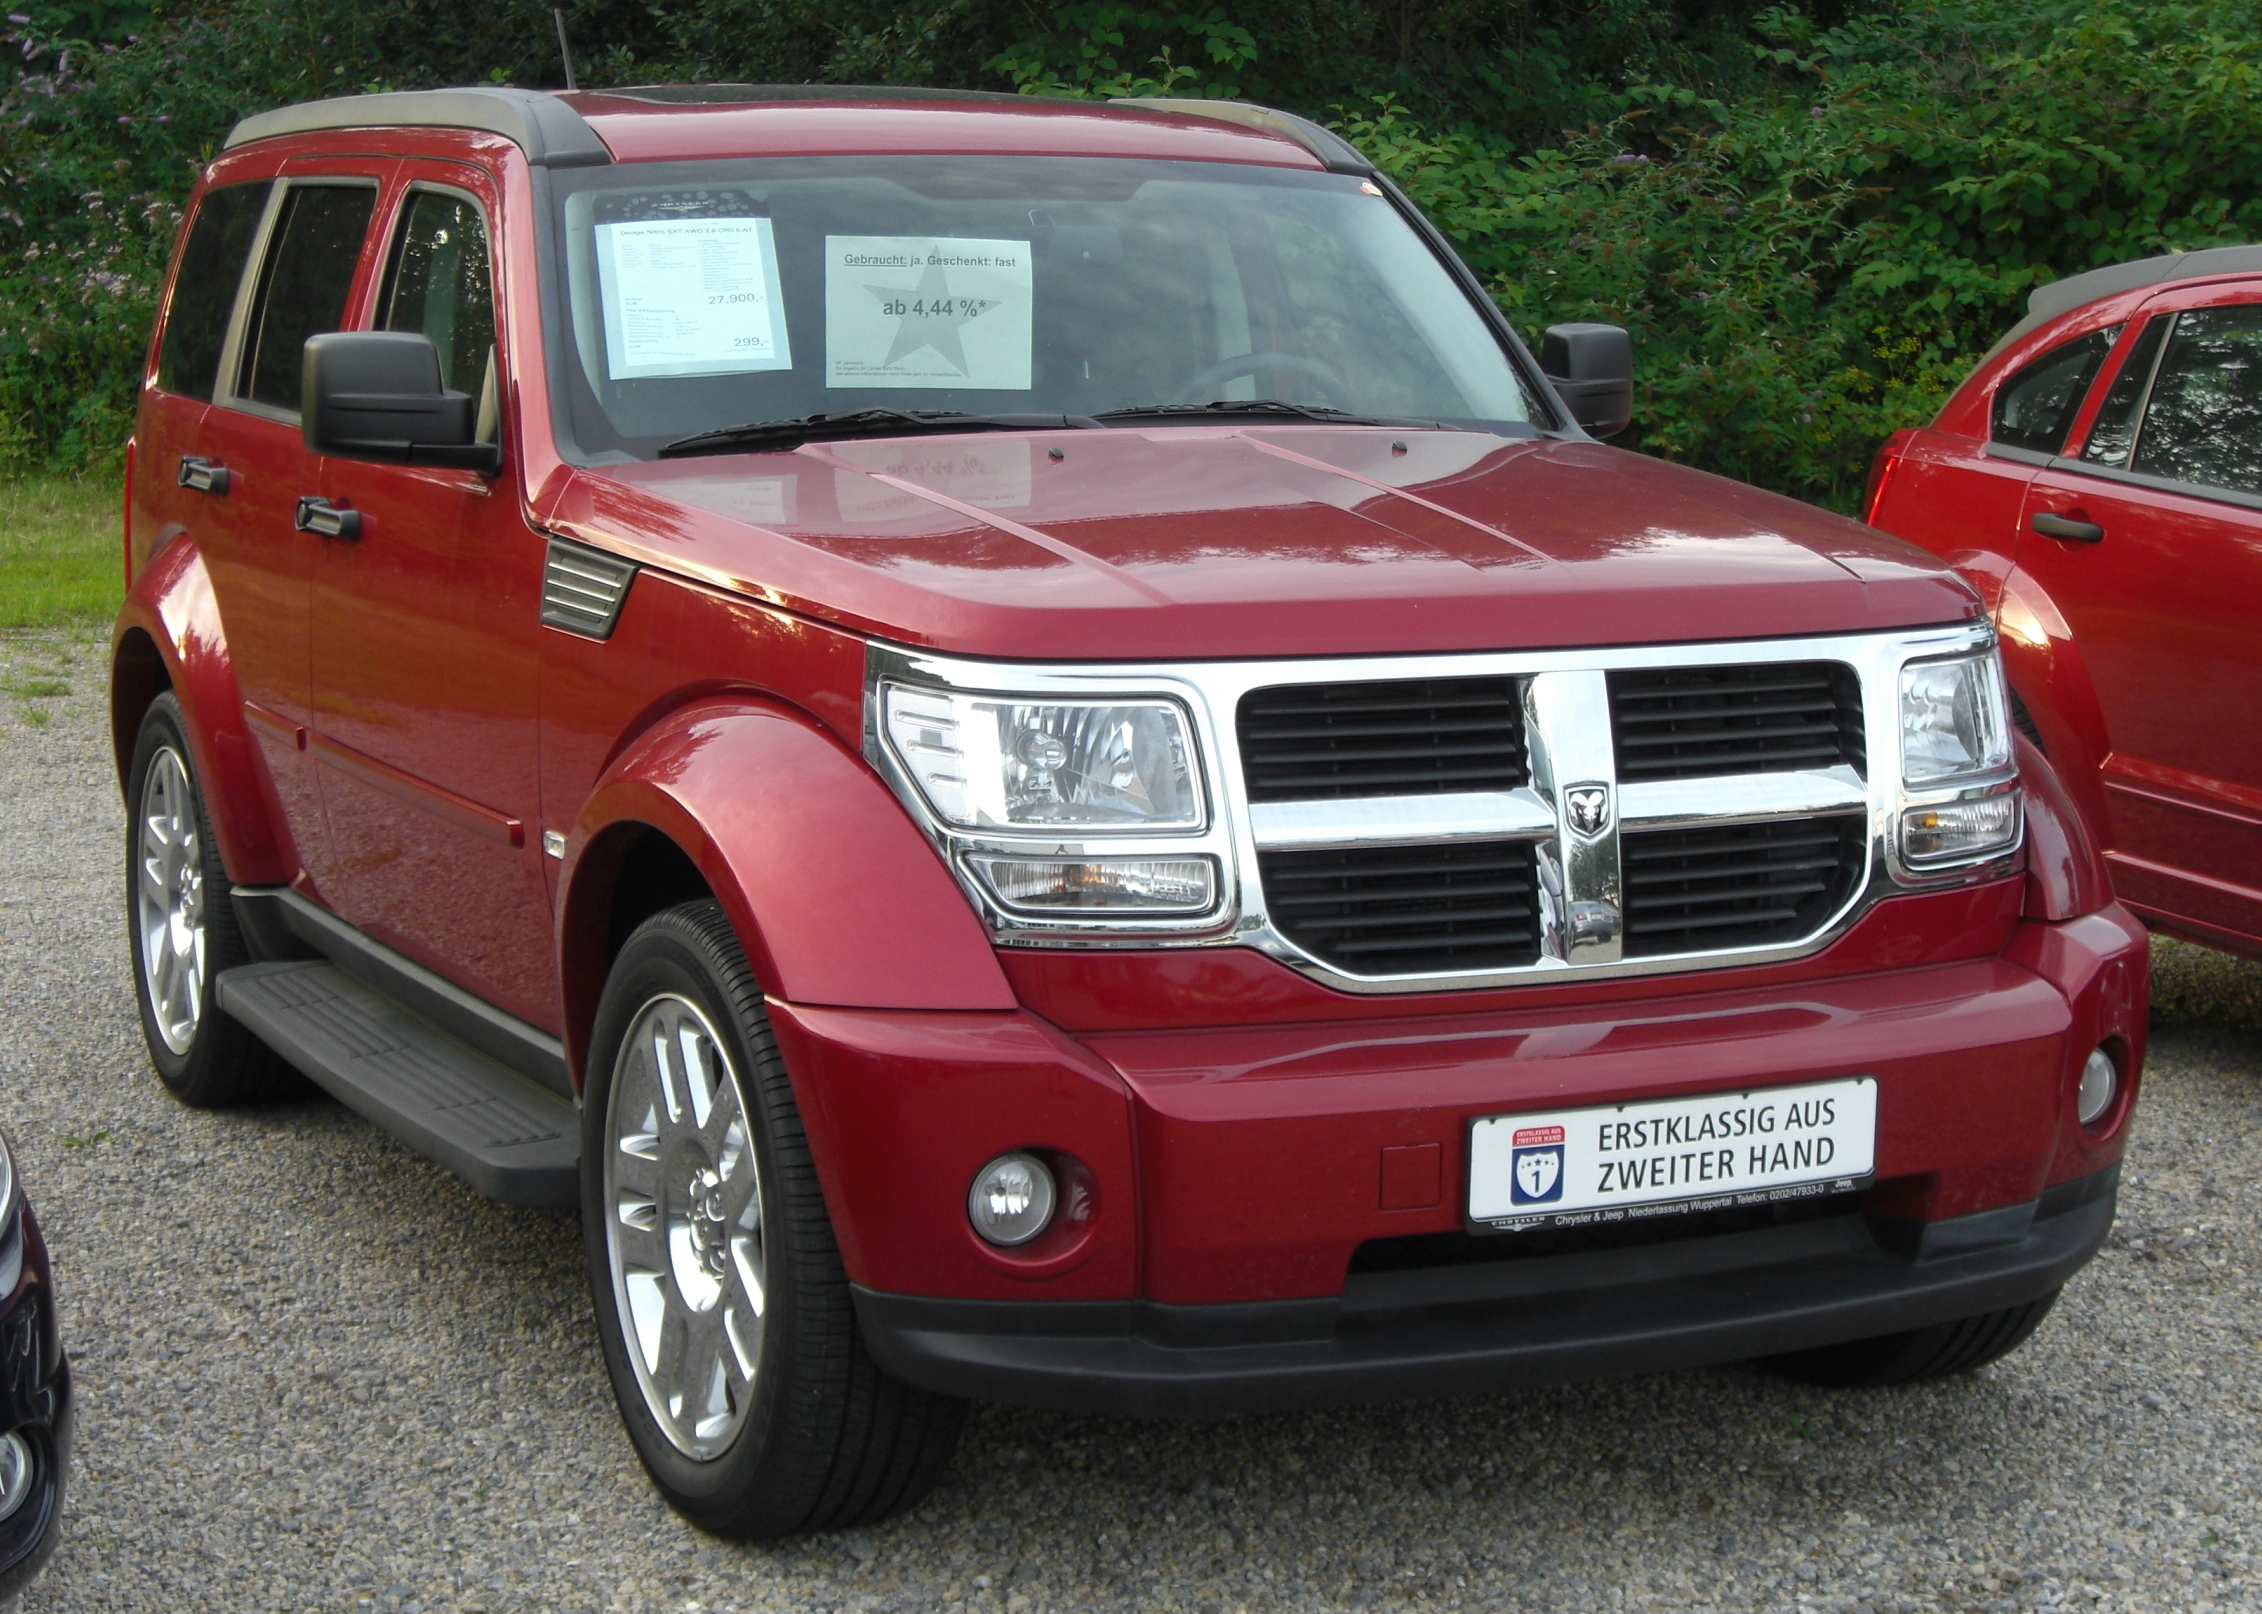 dodge nitro 2 8 crd technical details history photos on better parts ltd. Black Bedroom Furniture Sets. Home Design Ideas